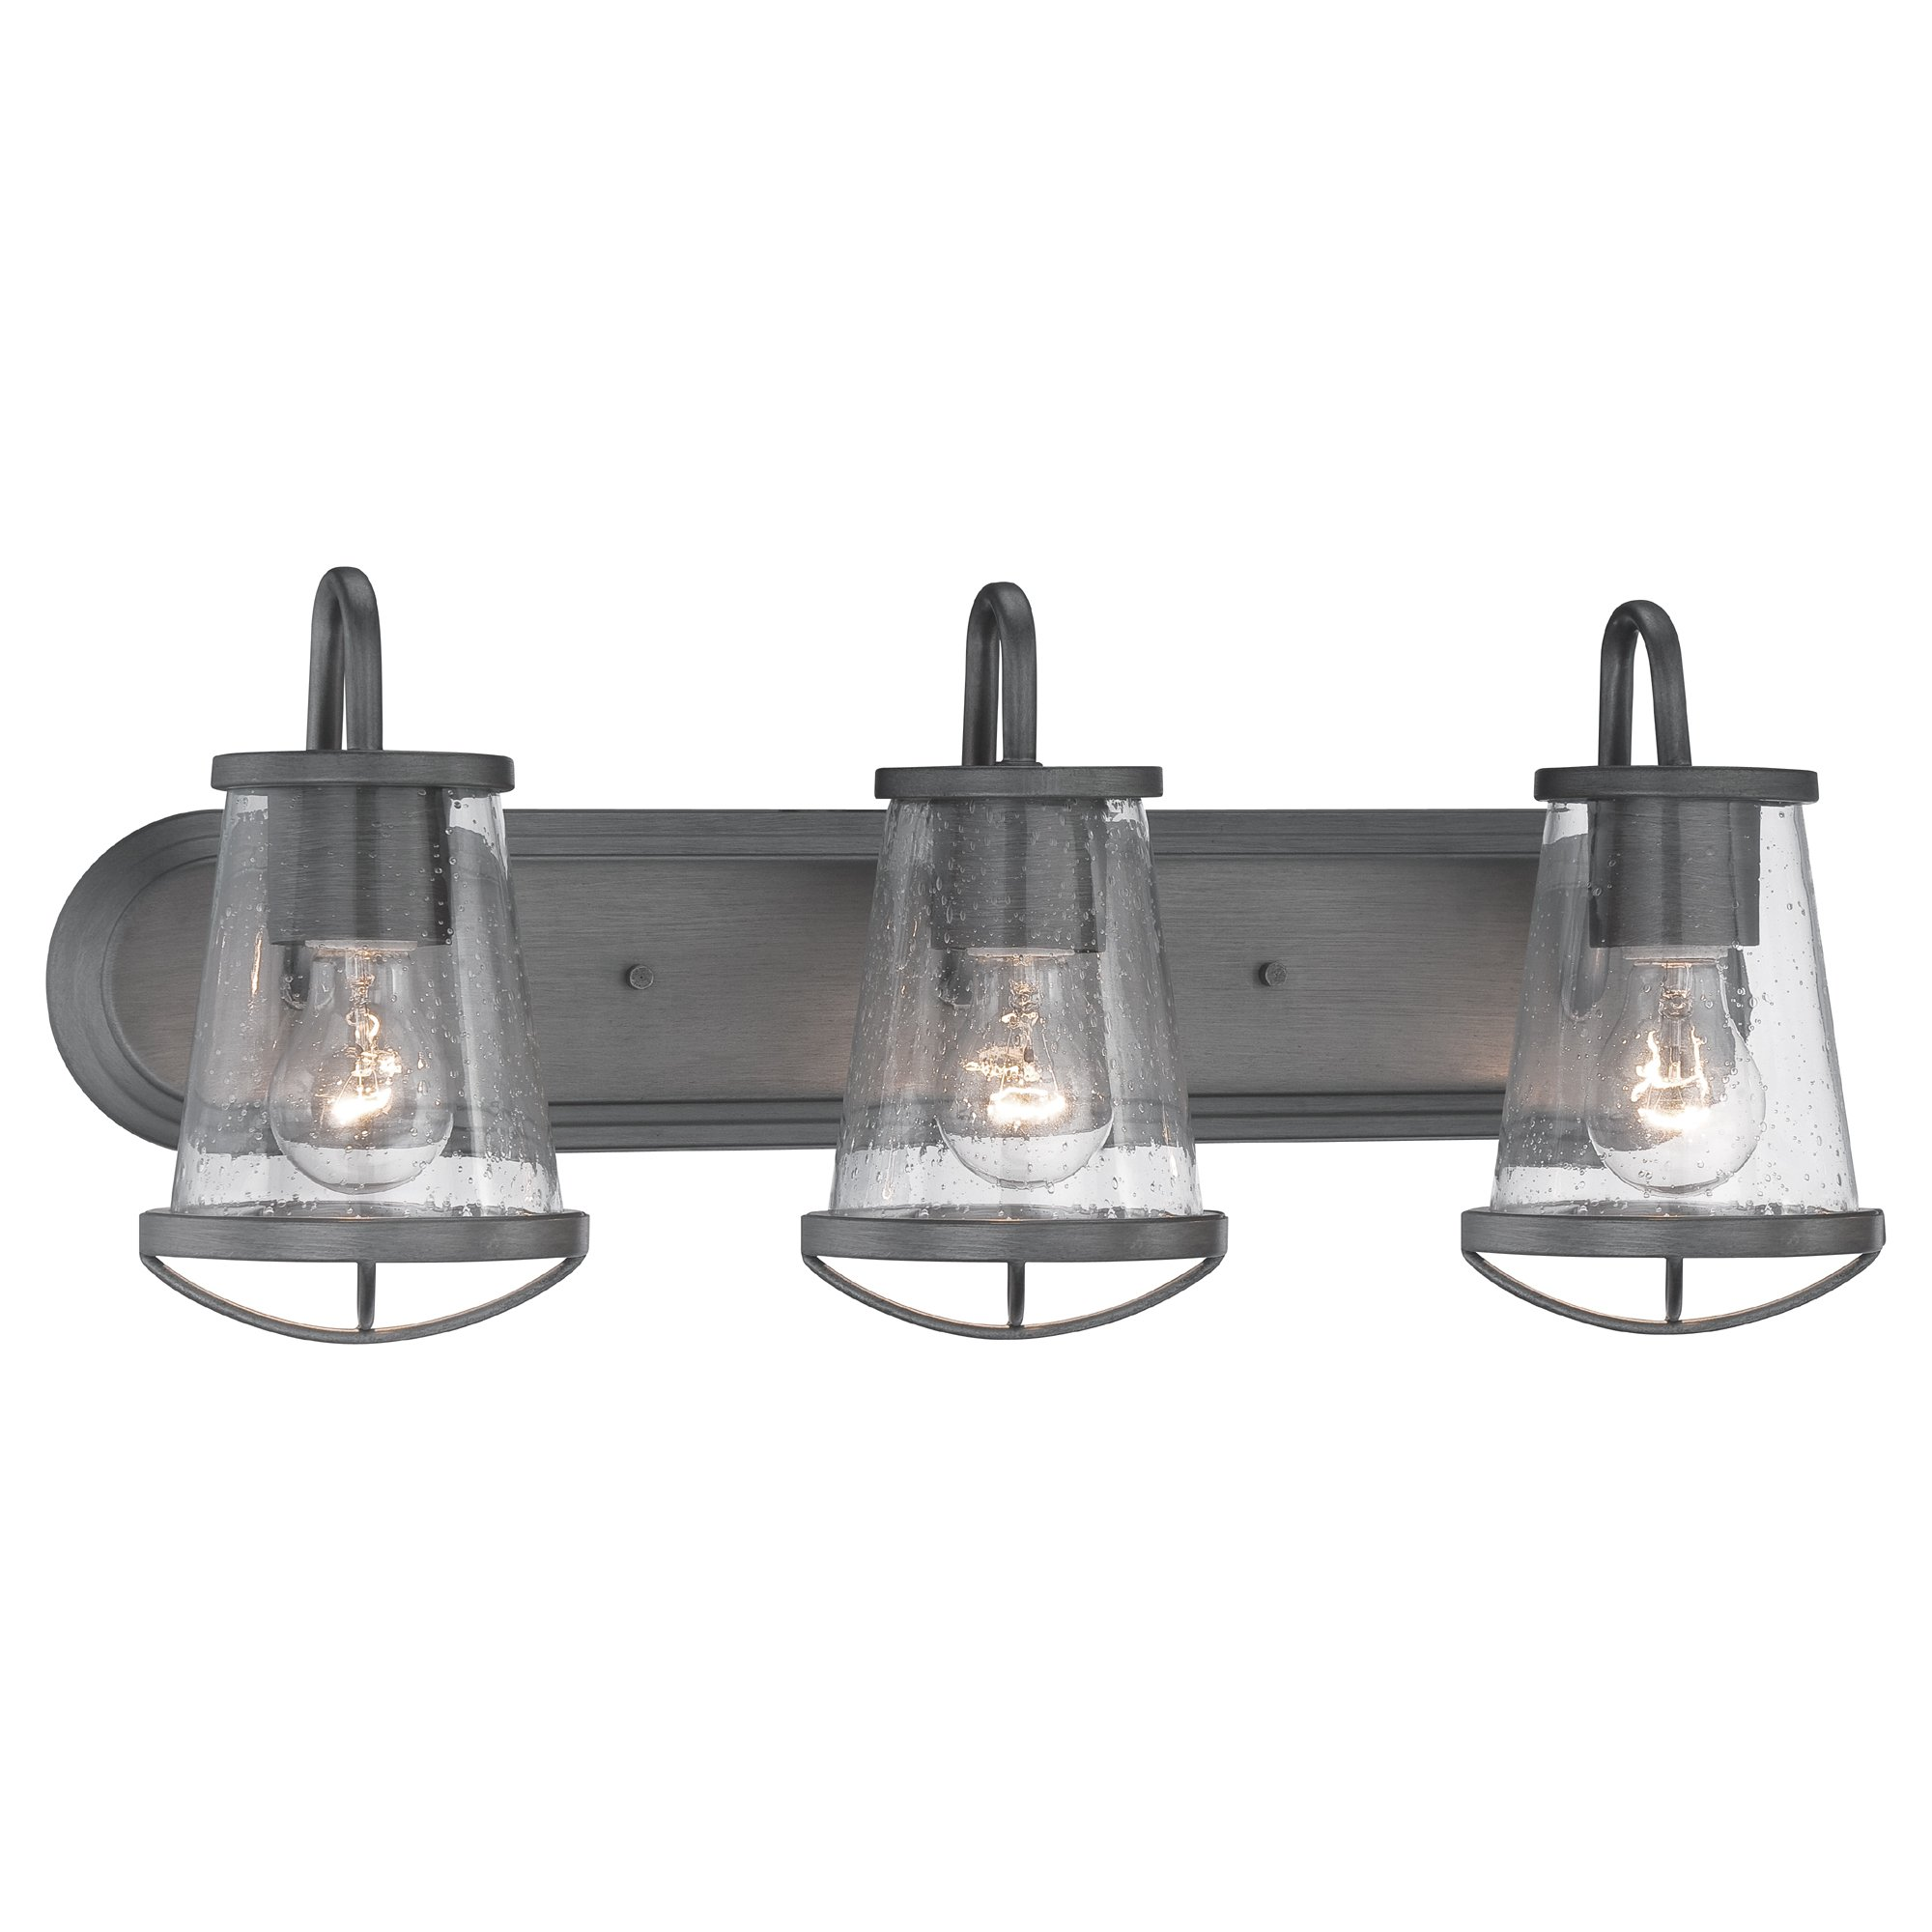 87003-WI Bathroom Lighting, Darby 3 Light Bath Vanity by Designers Fountain